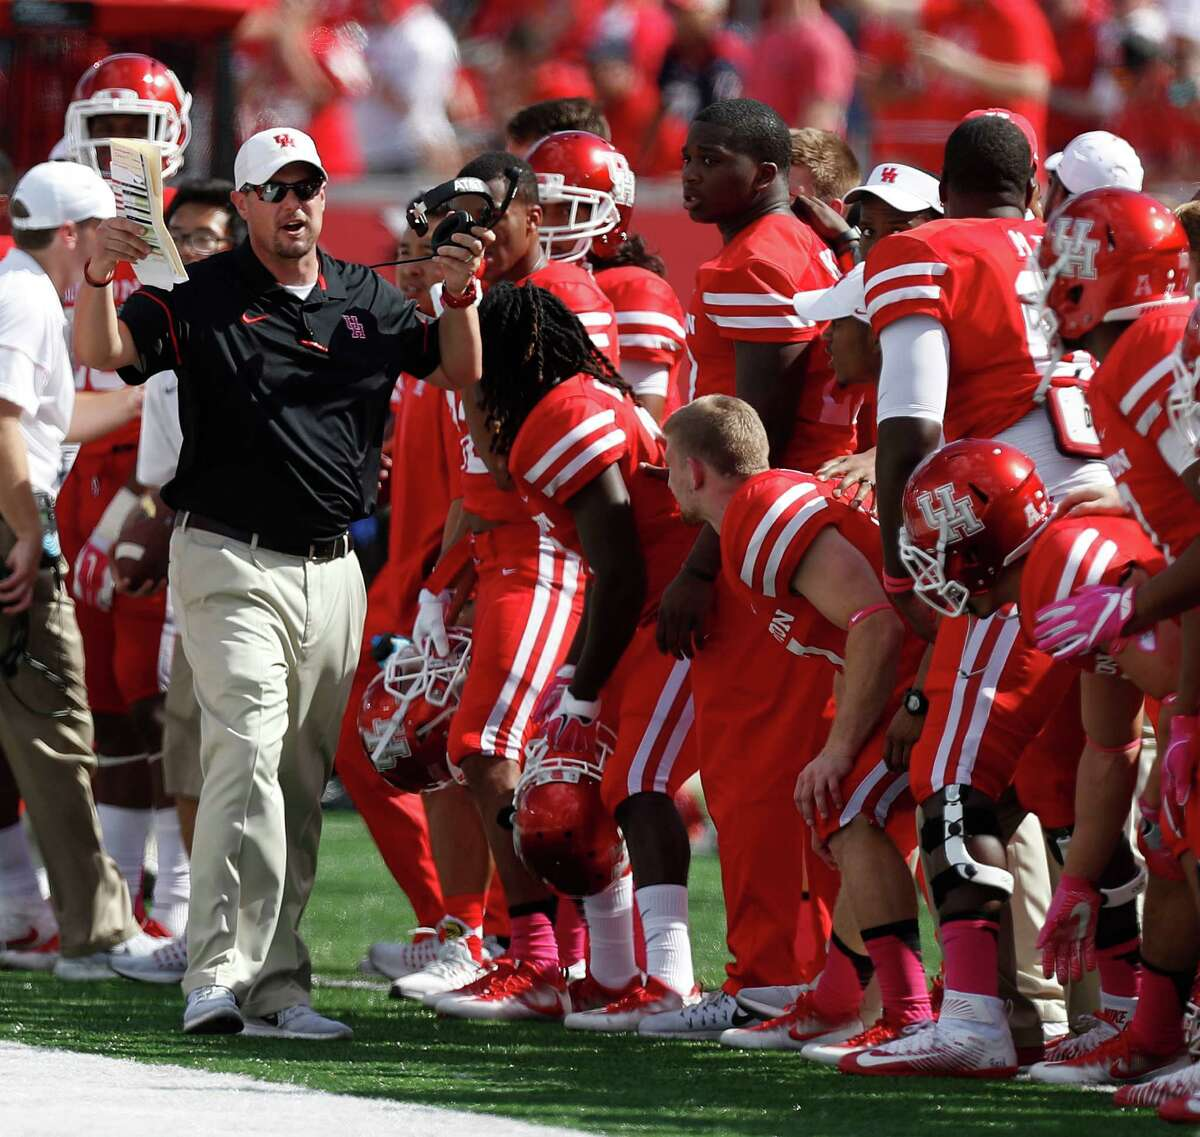 Houston Cougars head coach Tom Herman on the sidelines during the fourth quarter of a college football game at TDECU Stadium, Saturday,Oct. 29, 2016 in Houston.